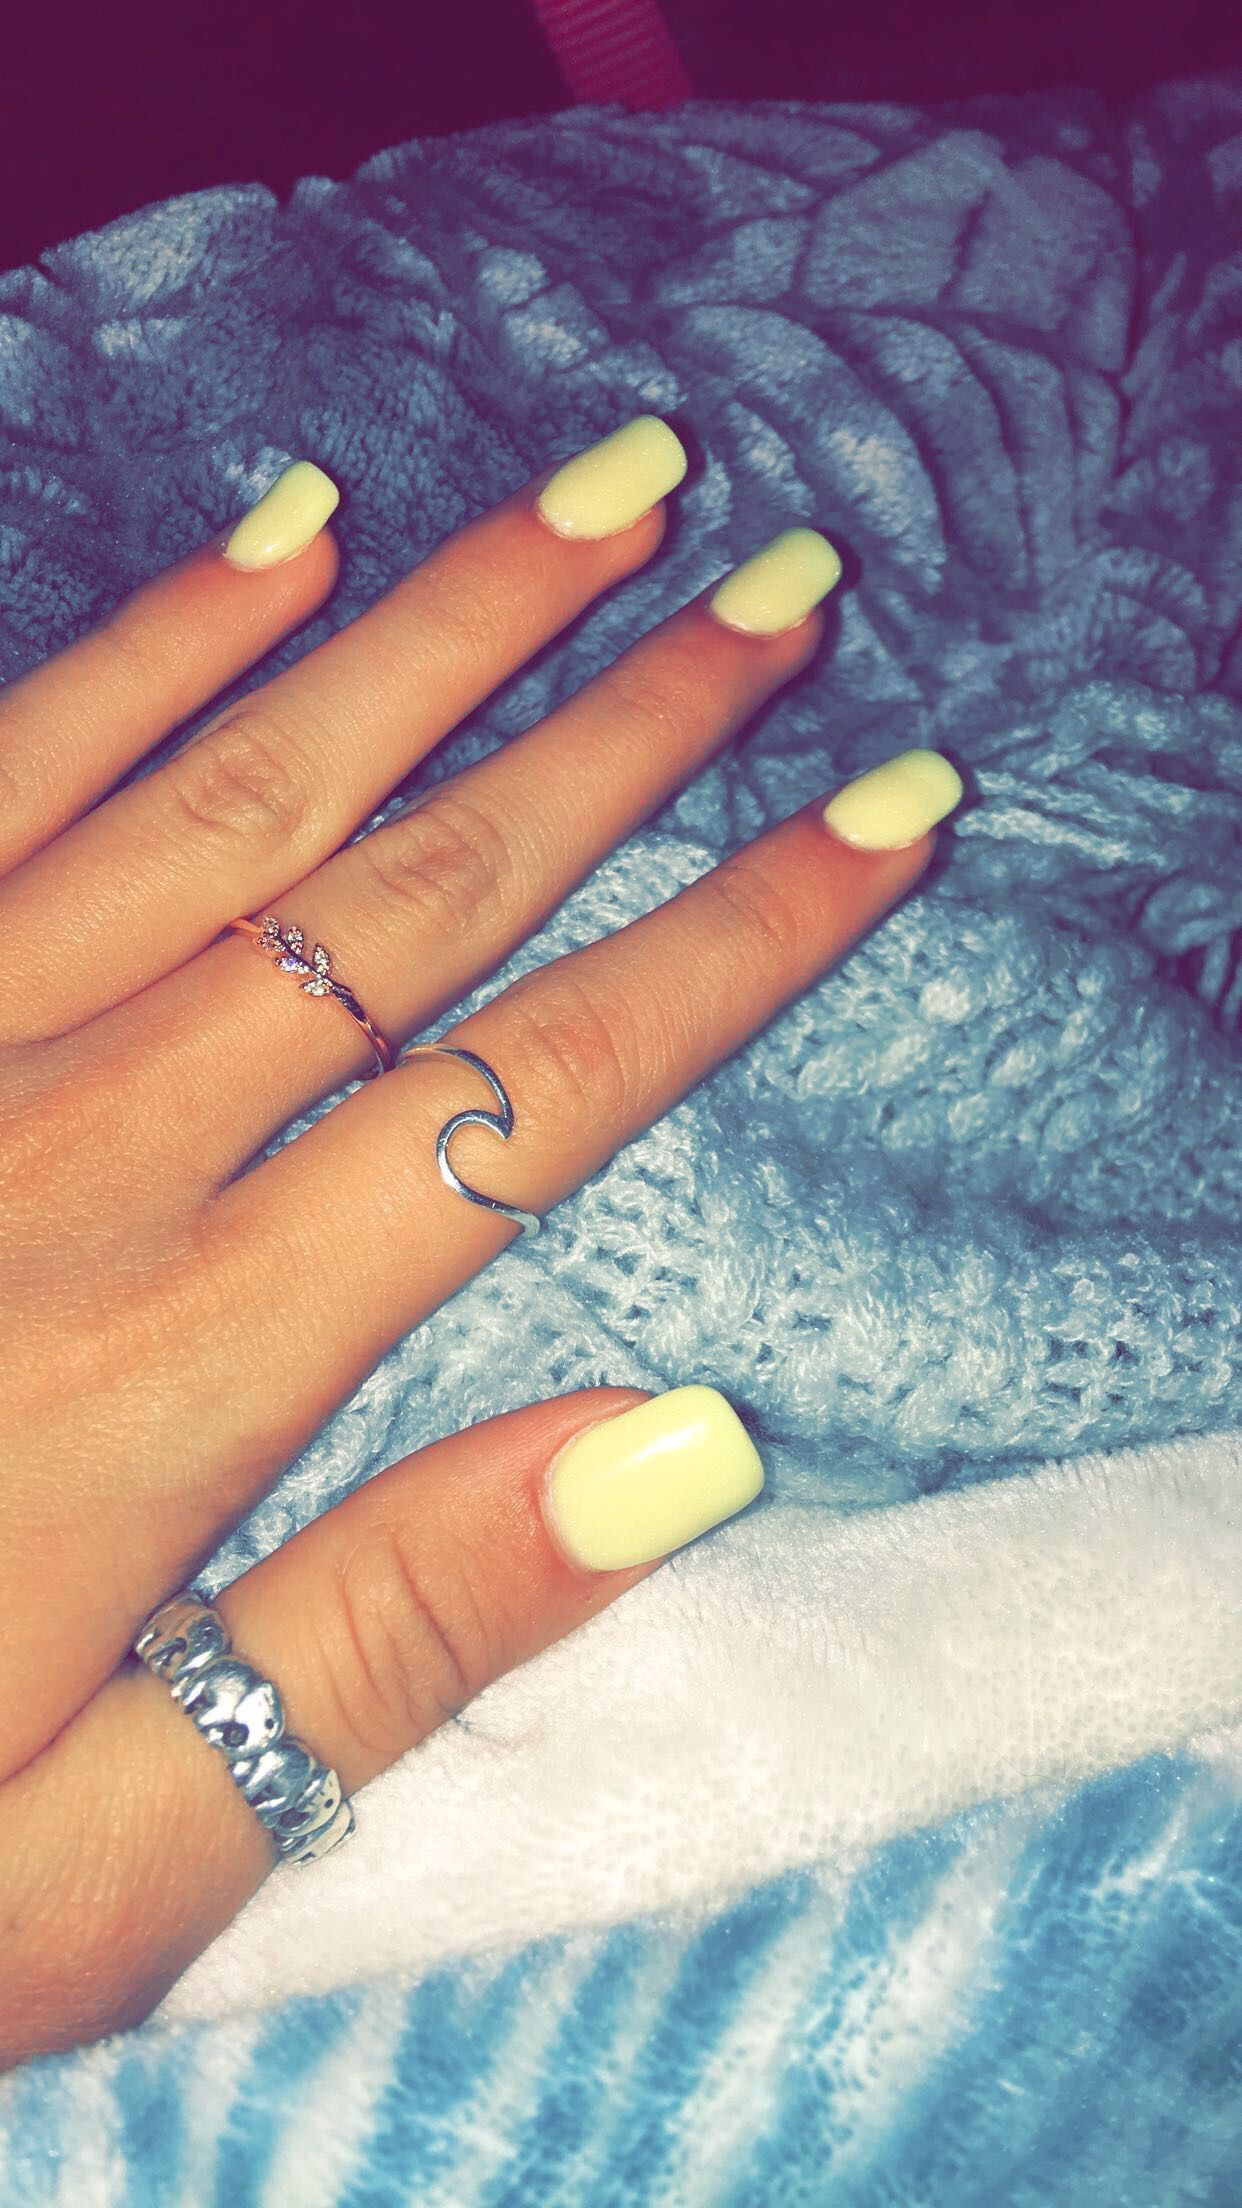 Intricate Designs For The Short Acrylic Nails Oval Shaped Nails Yellow Nails Trendy Nails